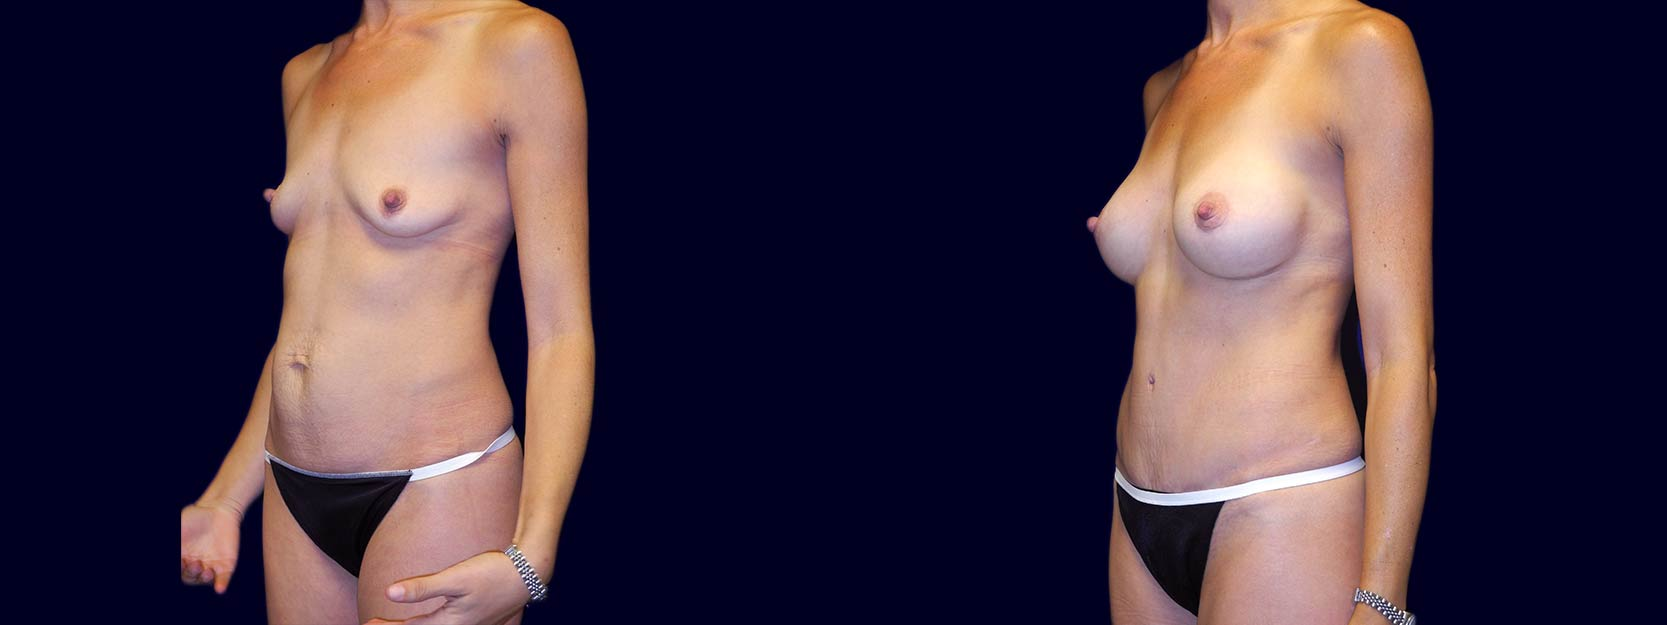 Left 3/4 View - Breast Augmentation and Tummy Tuck